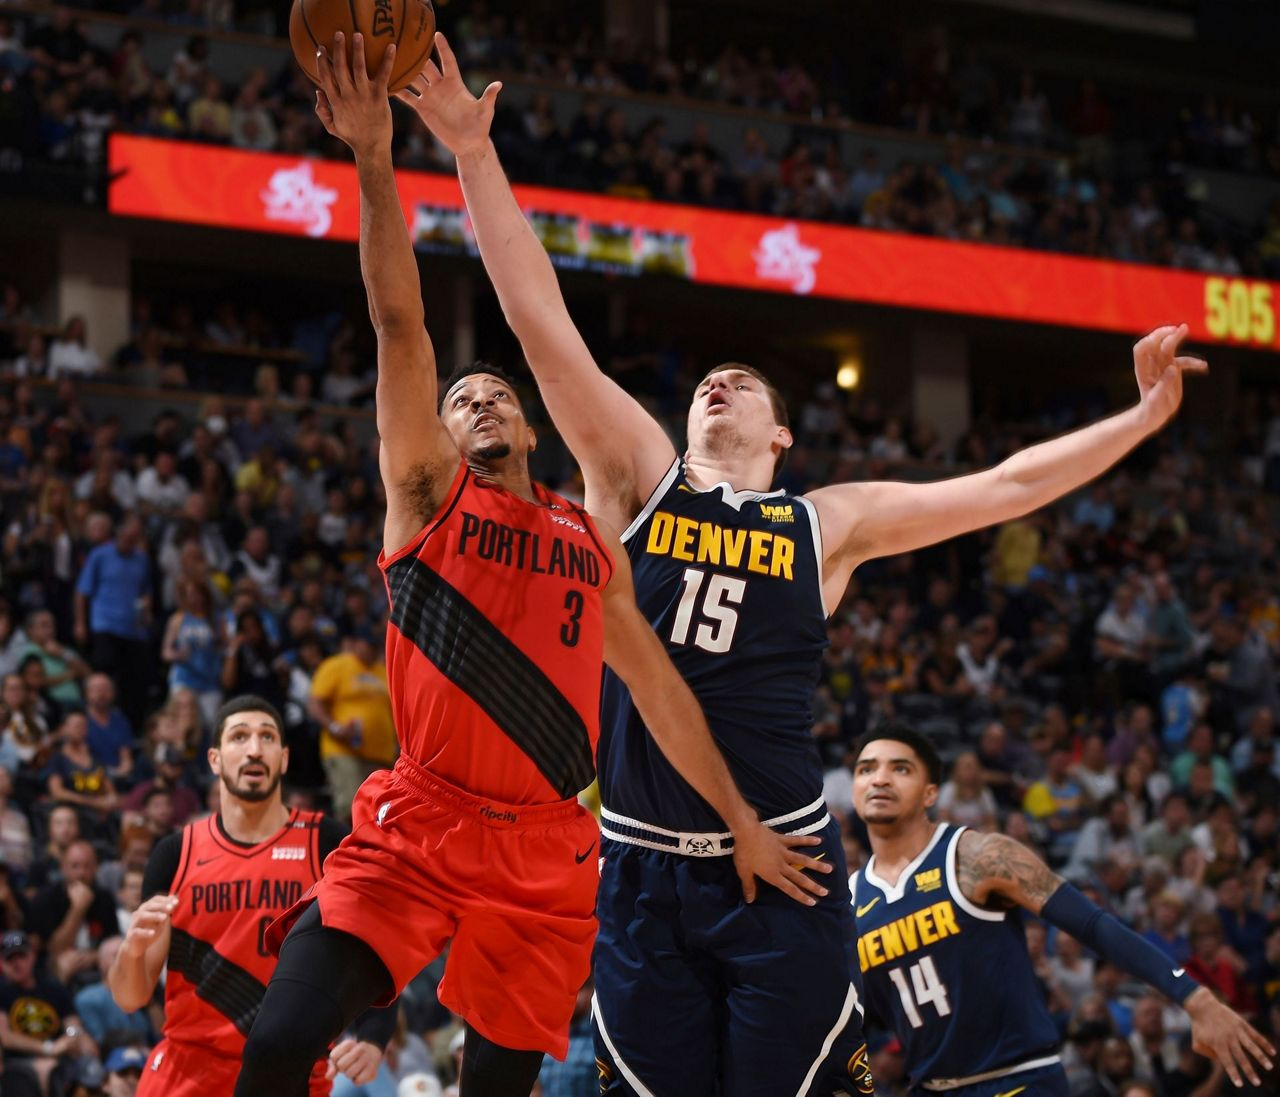 Portland Trail Blazers Basketball: Warriors' Durant Likely Out For Games 1 And 2 Vs Blazers